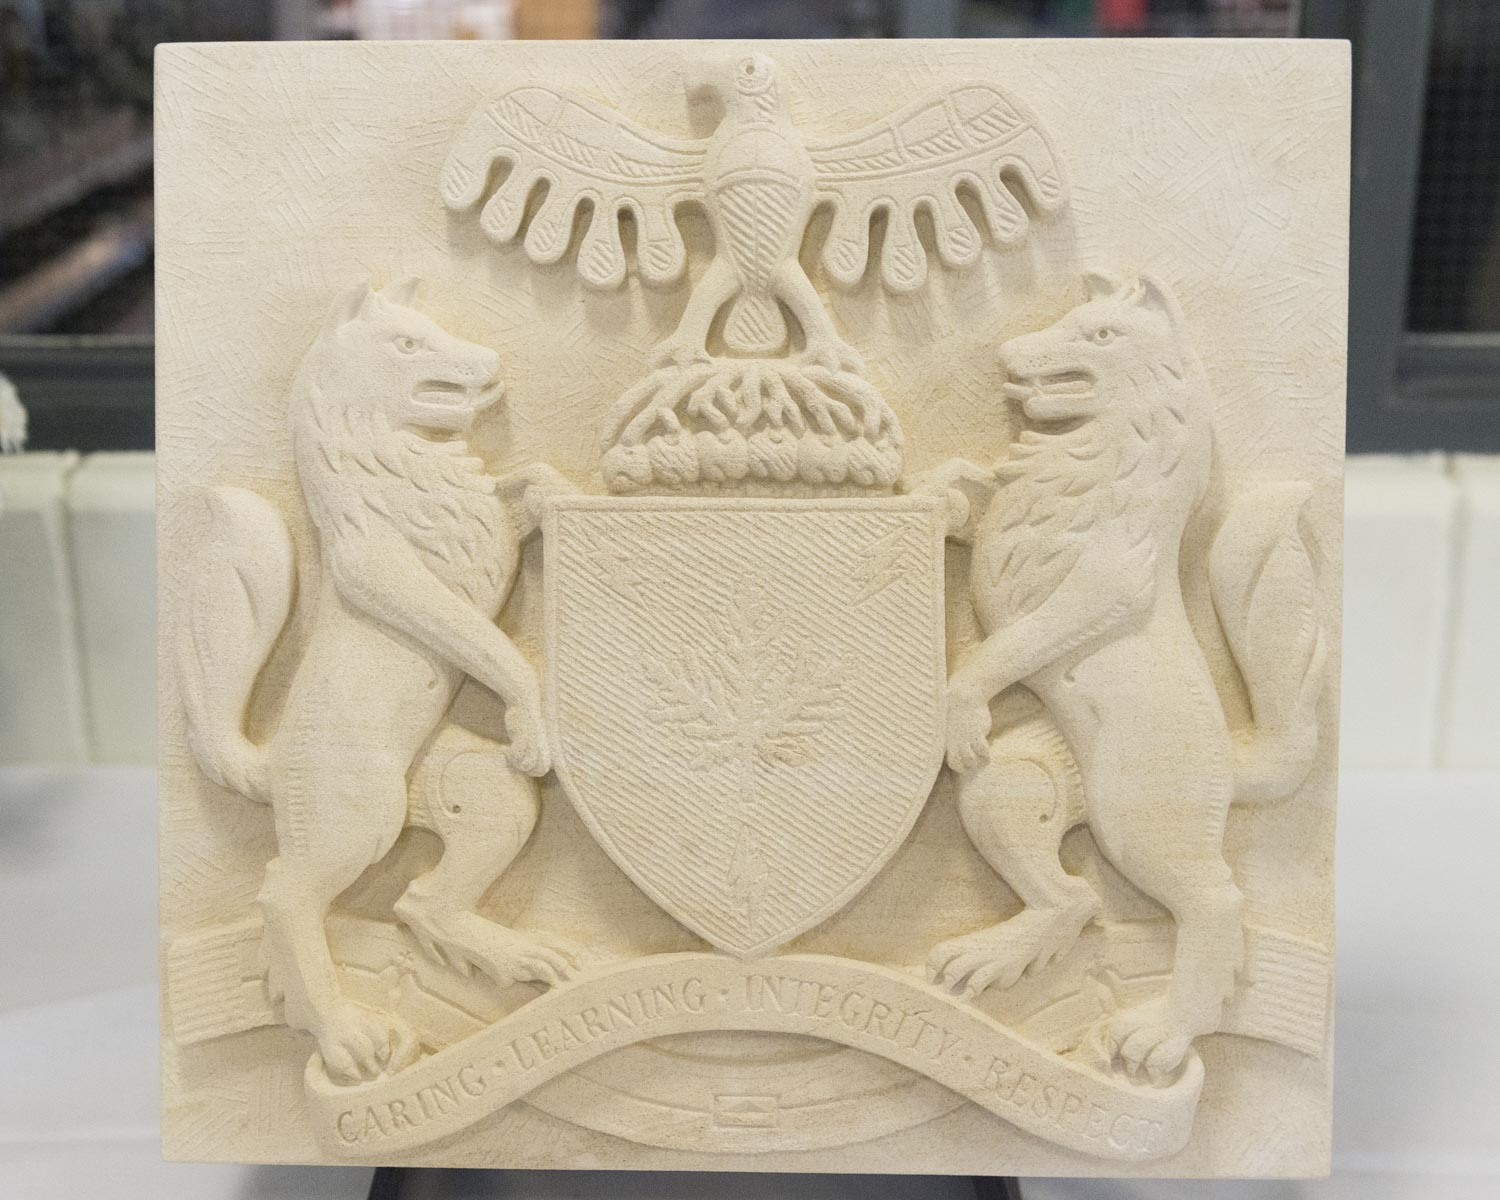 The new coat of arms were proudly displayed during the event, even being carved into stone.